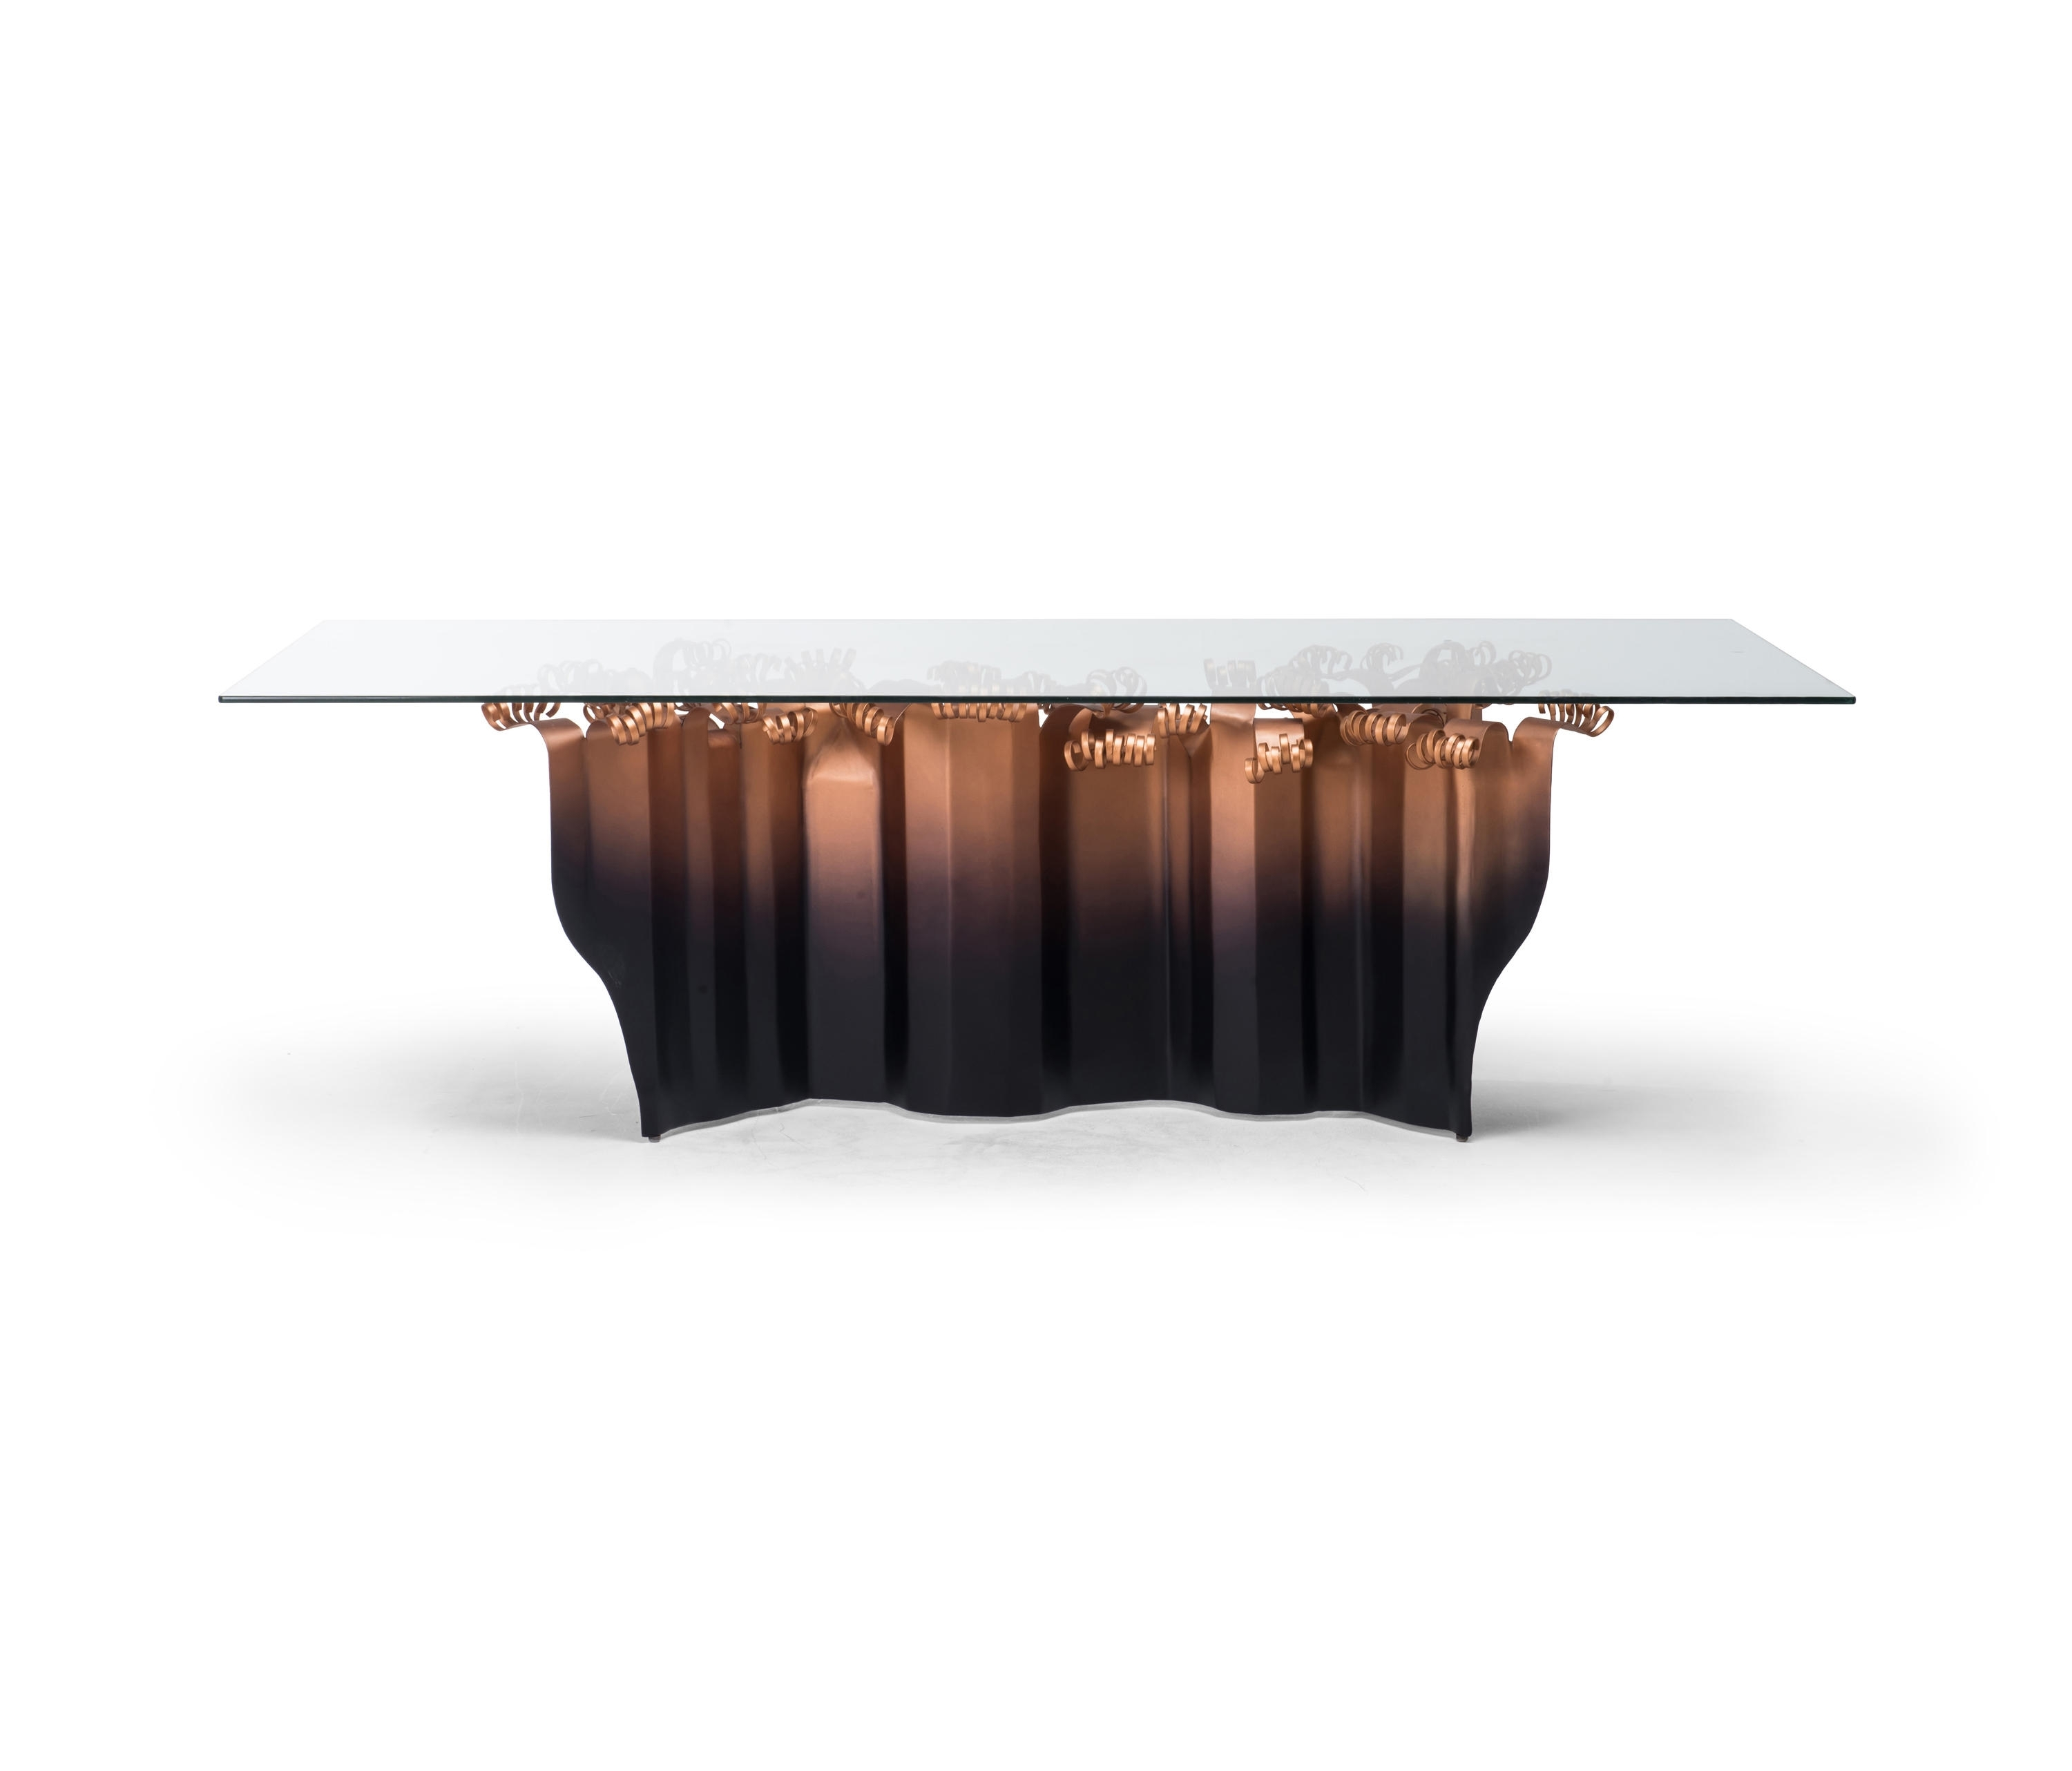 Vivo Dining Table – Dining Tables From Kenneth Cobonpue | Architonic Regarding 2017 Artisanal Dining Tables (Photo 18 of 20)